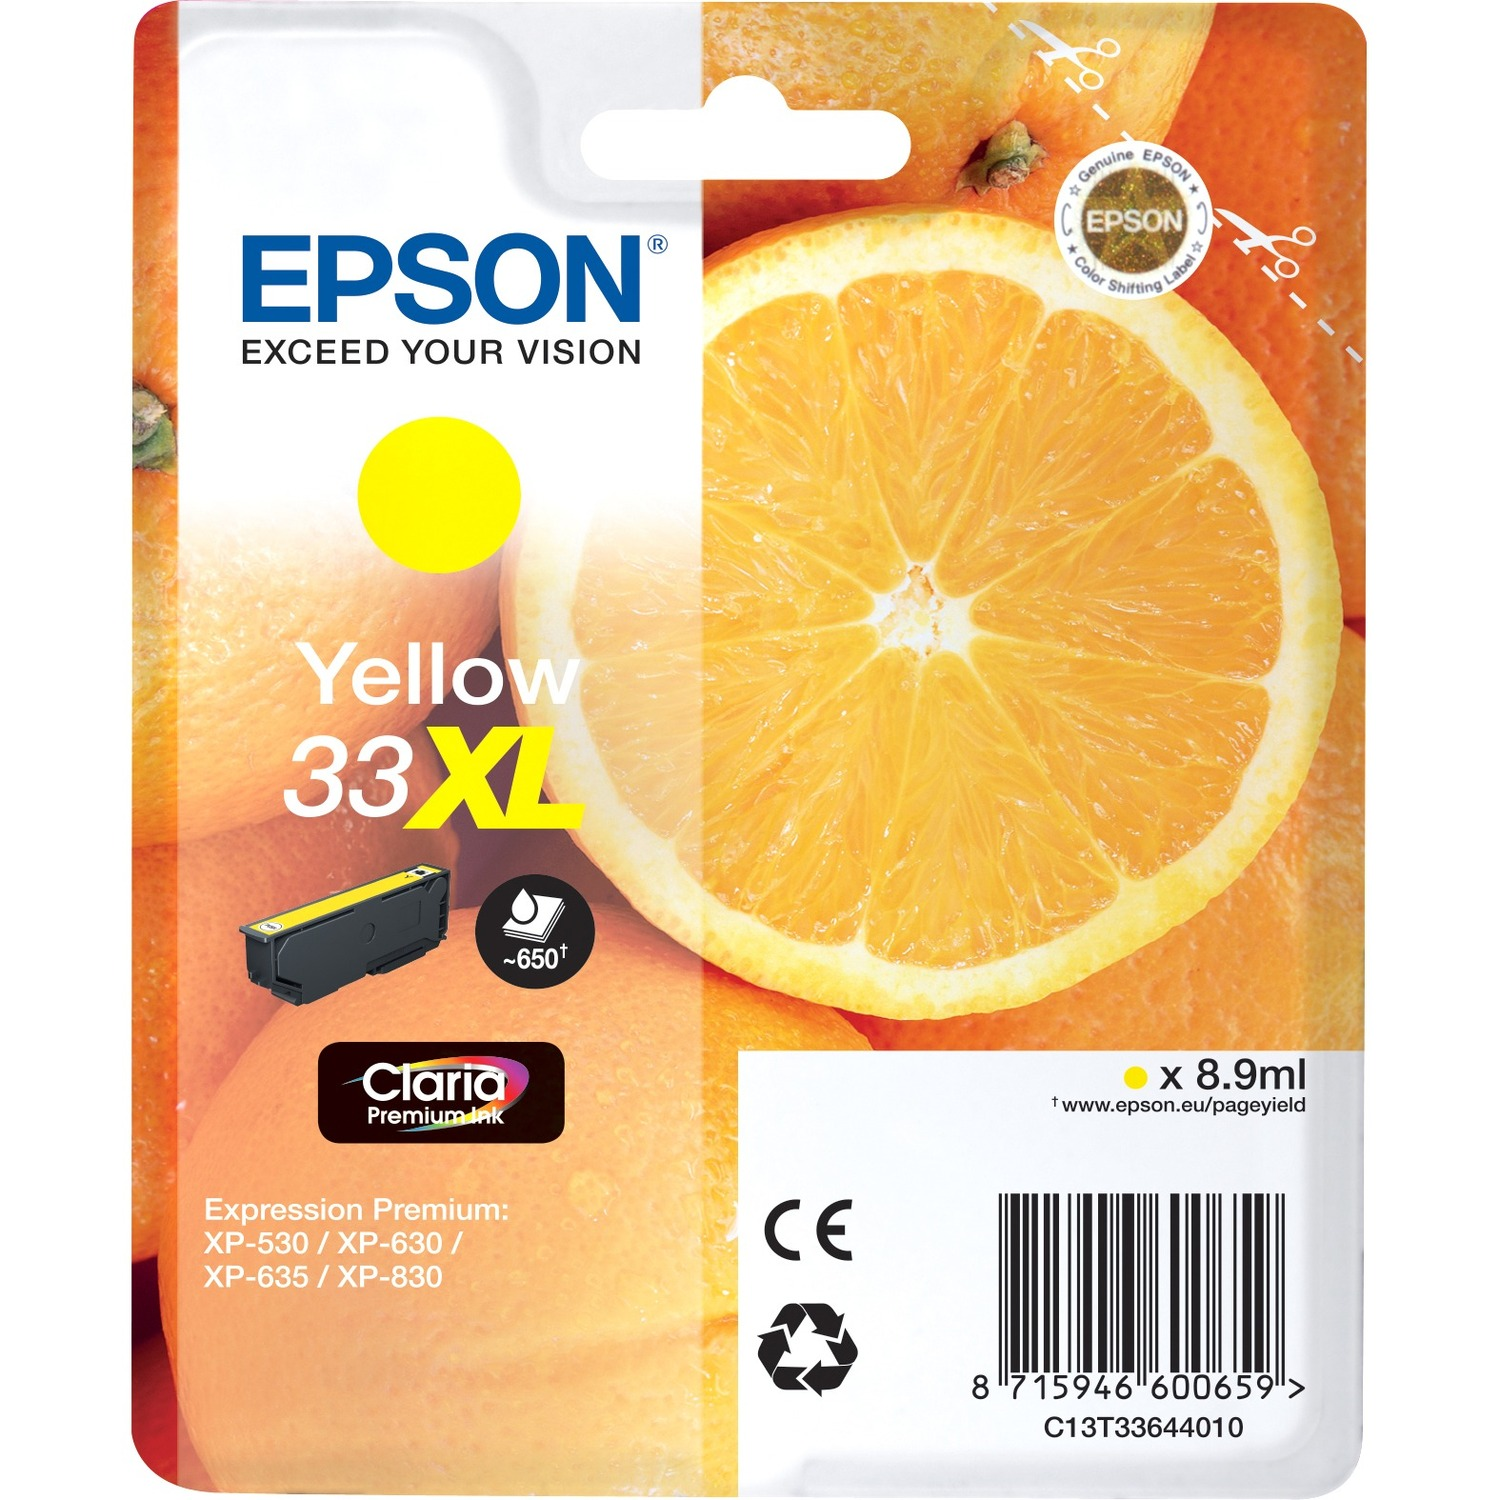 Epson Claria 33XL Ink Cartridge - Yellow - Inkjet - High Yield - 650 Page - 1 / Blister Pack